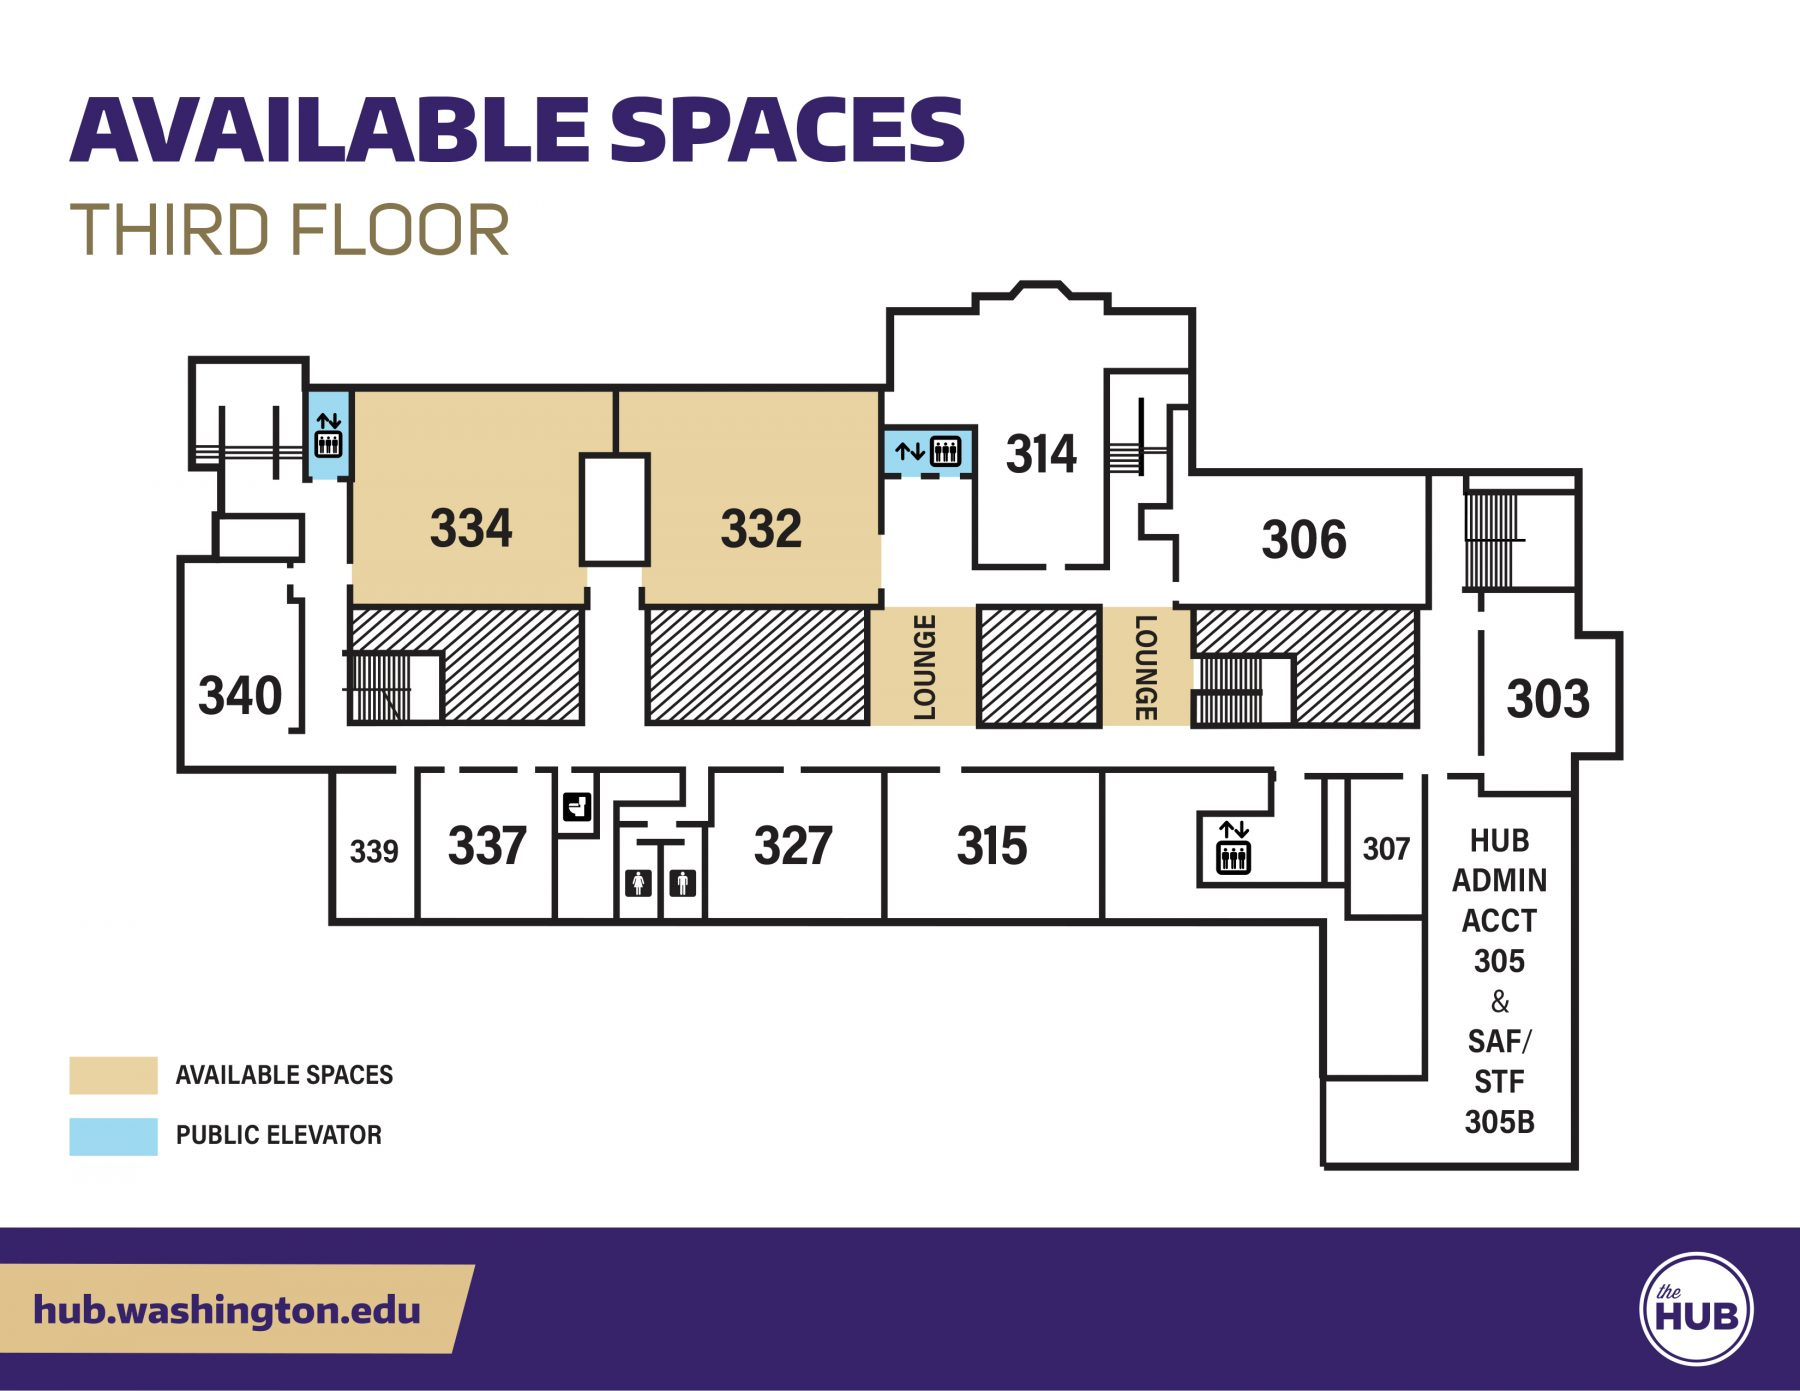 HUB Available Spaces - Third Floor